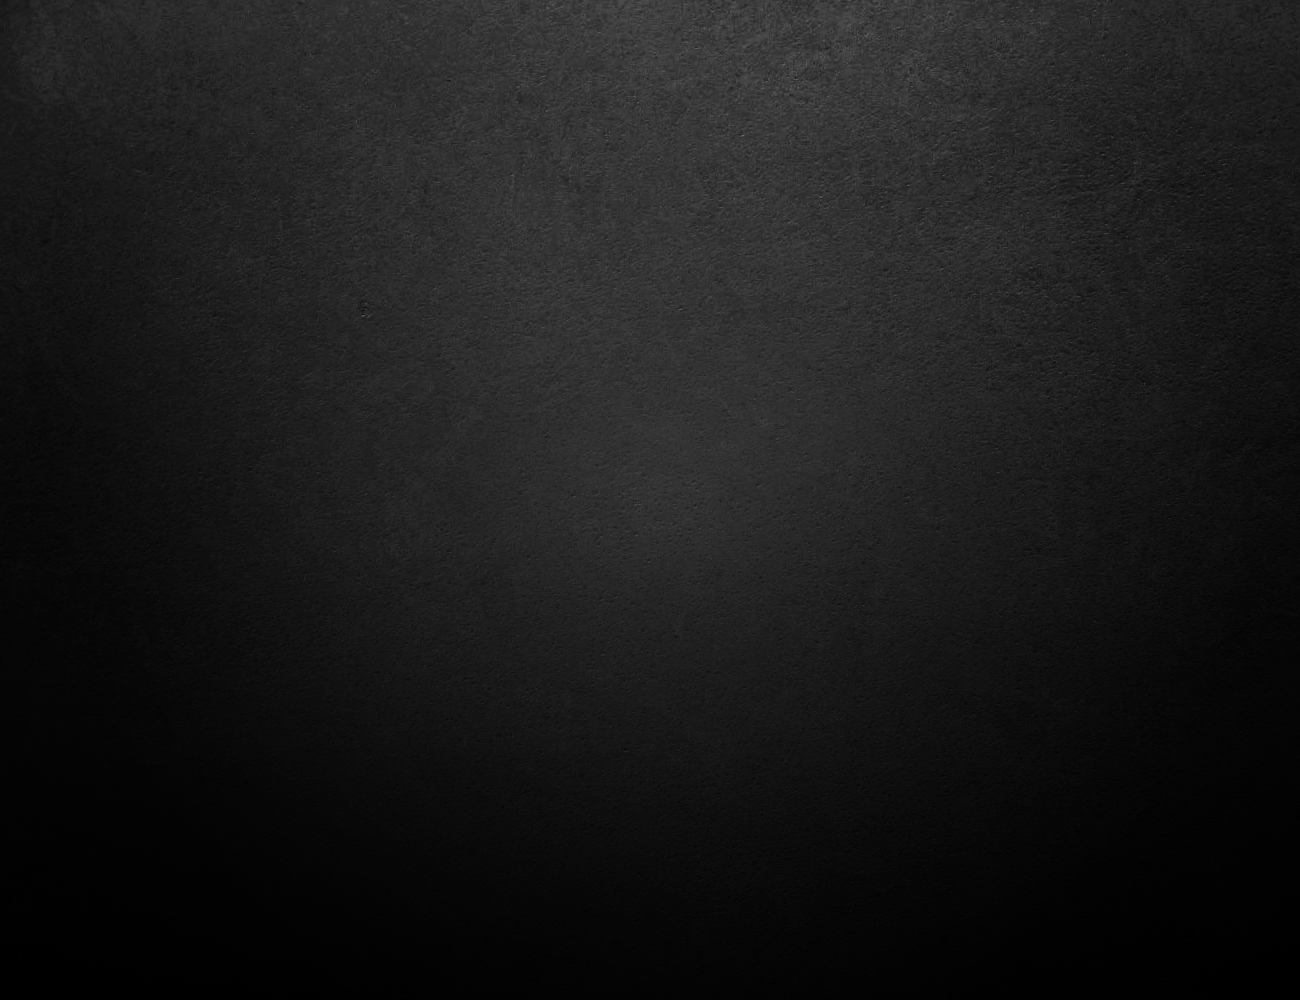 Black Gradient Wallpaper - WallpaperSafari